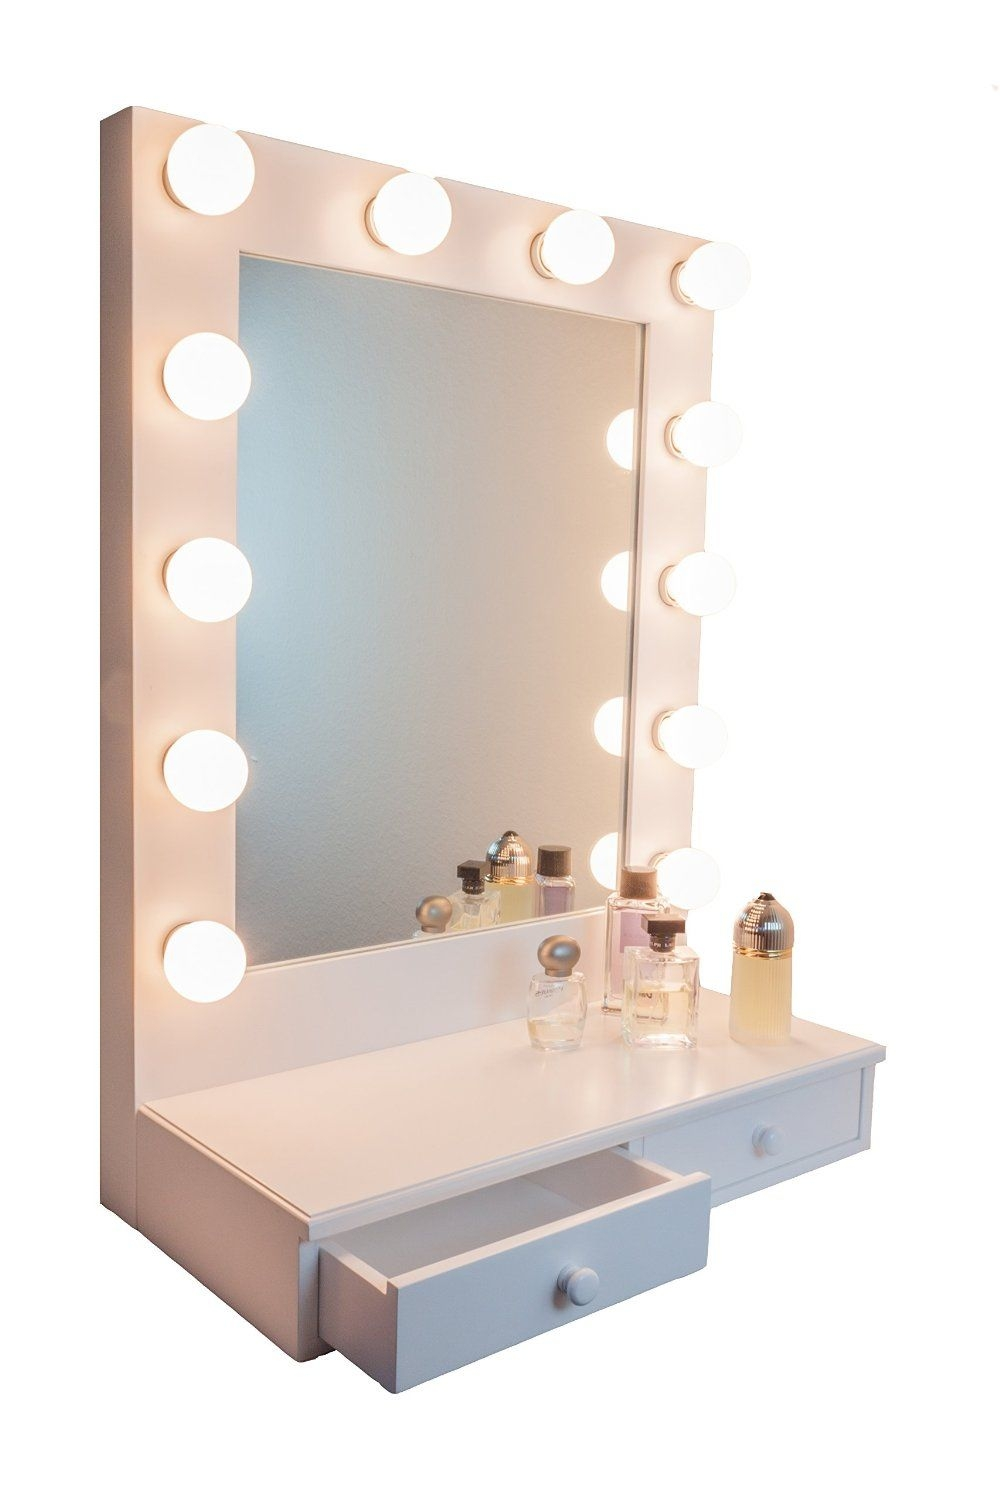 Hollywood D-luxe Vanity Mirror With Drawers by Impressions Vanity White